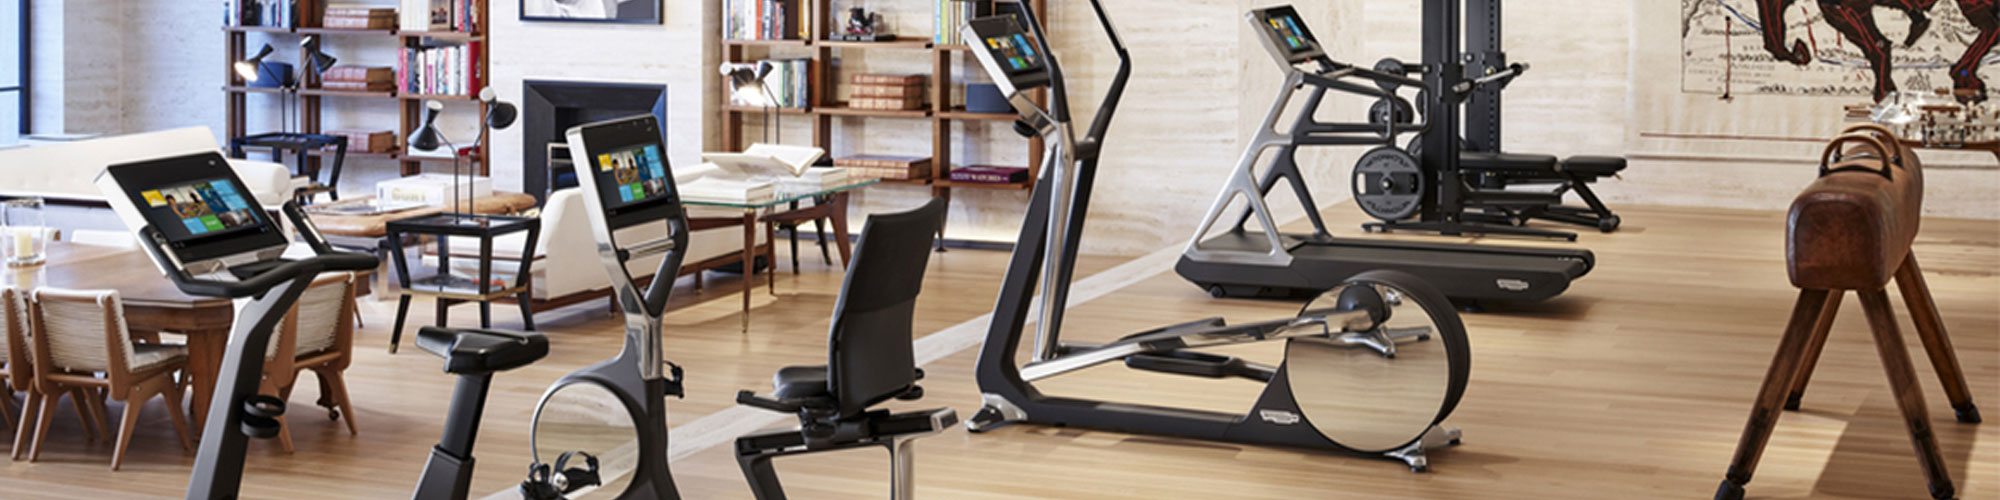 Range of wellness exercise machines